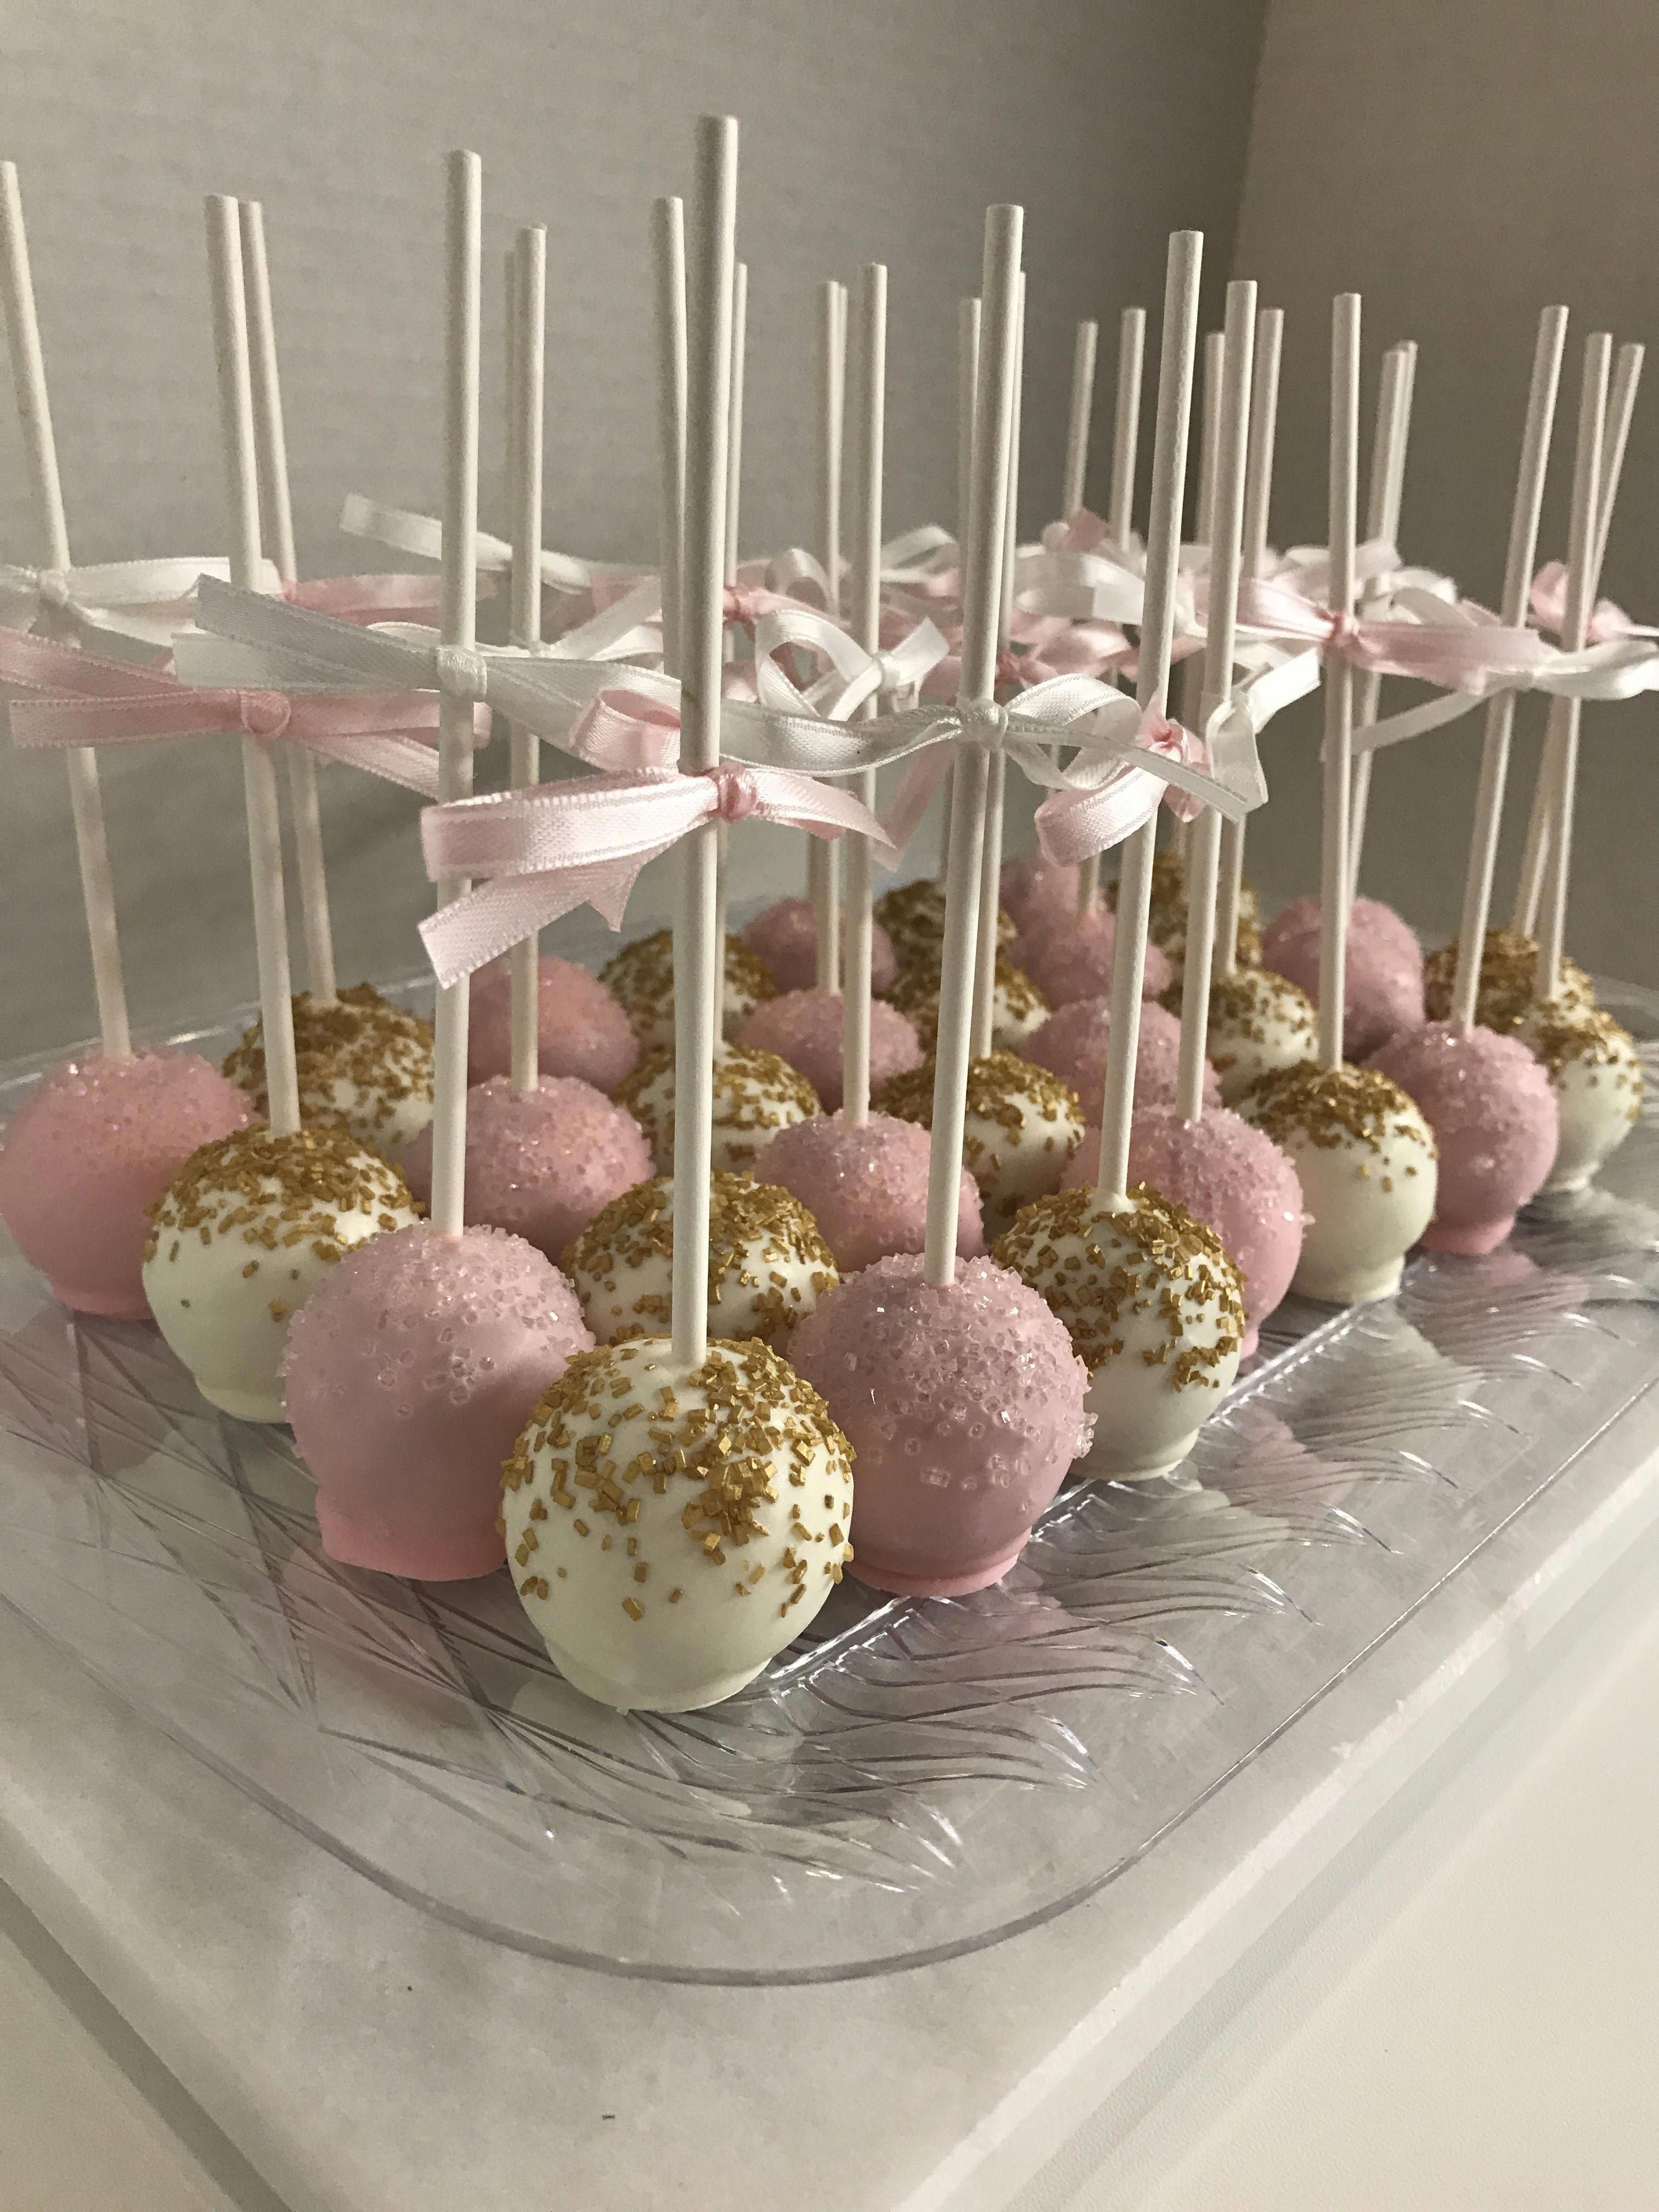 Wedding cakes, a totally must have eye pleasing cake presentation, pin reference... -  Wedding cakes, a totally must have eye pleasing cake presentation, pin reference 6357963033 – Not - #BabyShowersboy #BabyShowersdecorations #BabyShowersgames #BabyShowersgirl #BabyShowersideas #BabyShowersthemes #cake #cakes #eye #Pin #pleasing #presentation #reference #temasdeBabyShowers #Totally #Wedding